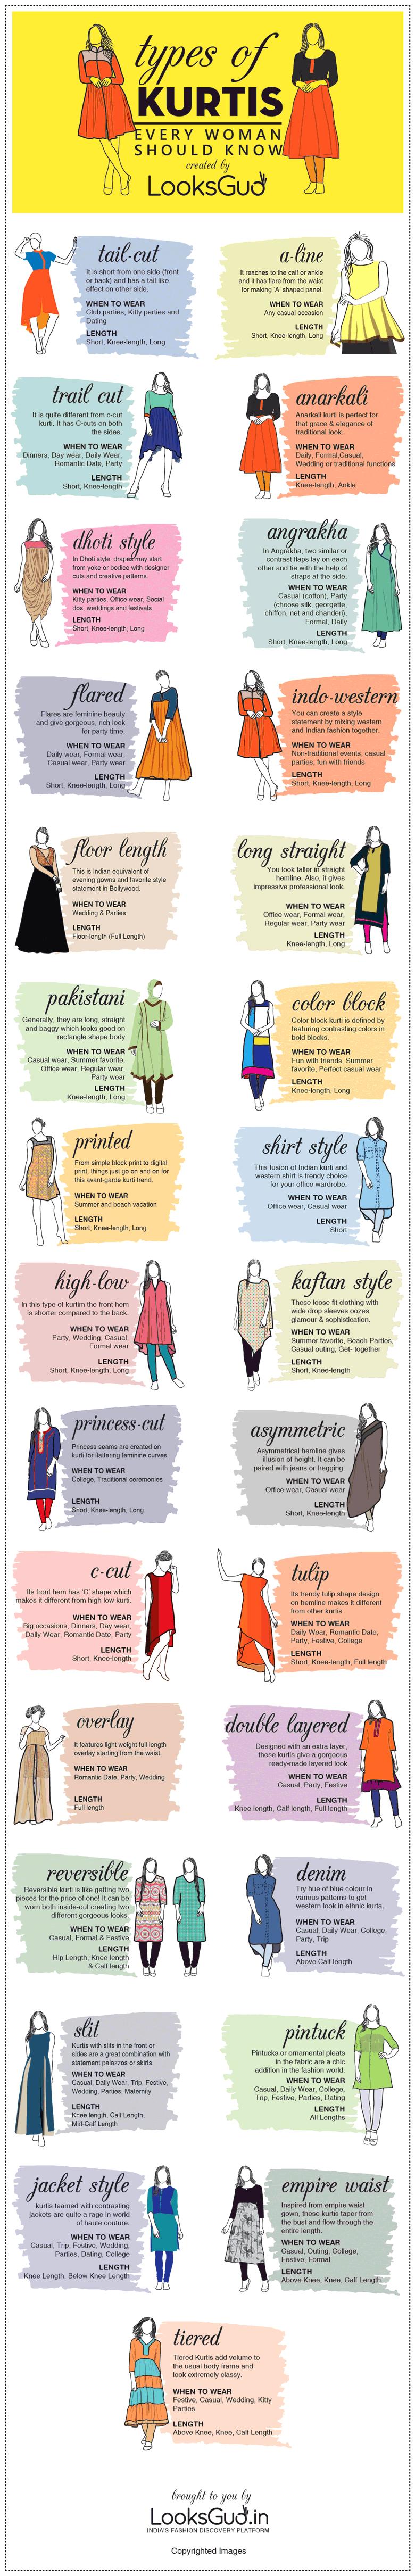 34 Types of Kurti Designs Every Woman Should Know | Fashion Style ...